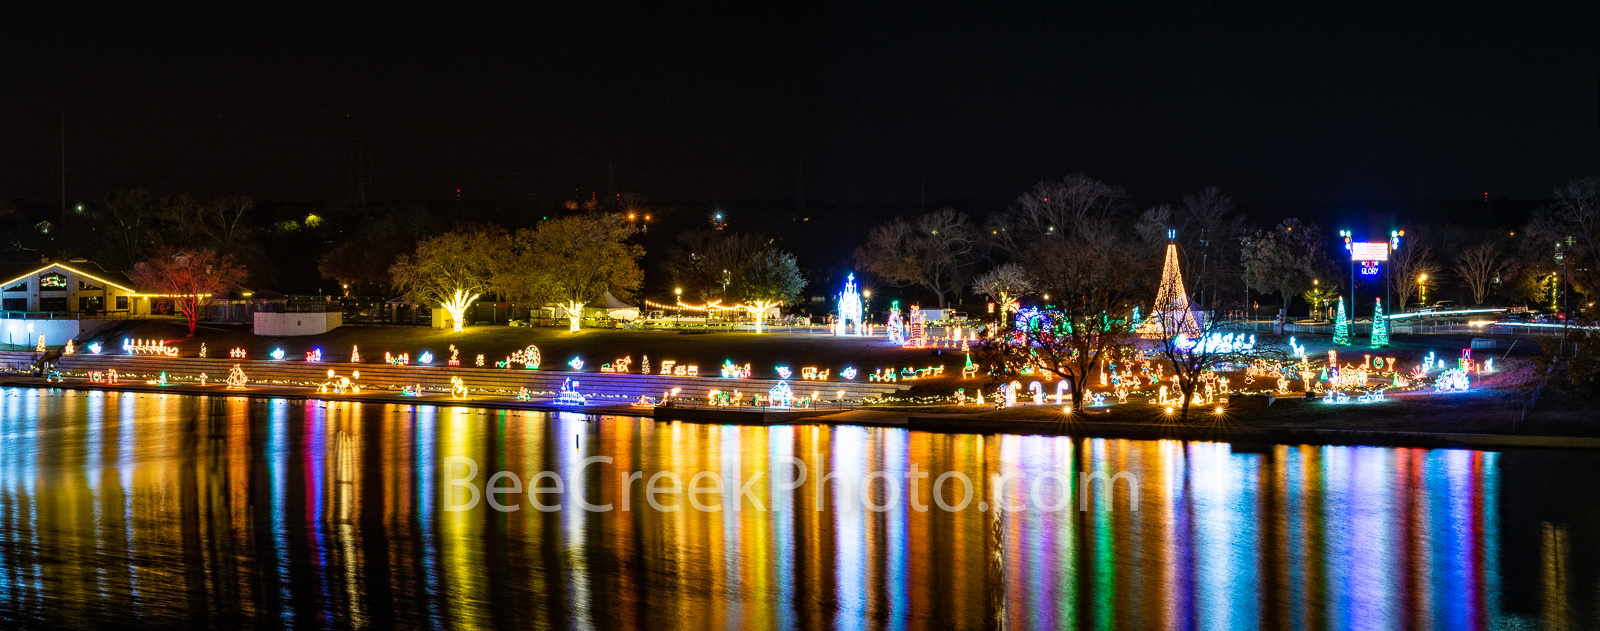 marble falls, texas, walkway of lights, texas Christmas, lake marble falls, downtown marble falls, small town, christmas, holiday lights, reflections, pano, panorama, texas hill country,, photo